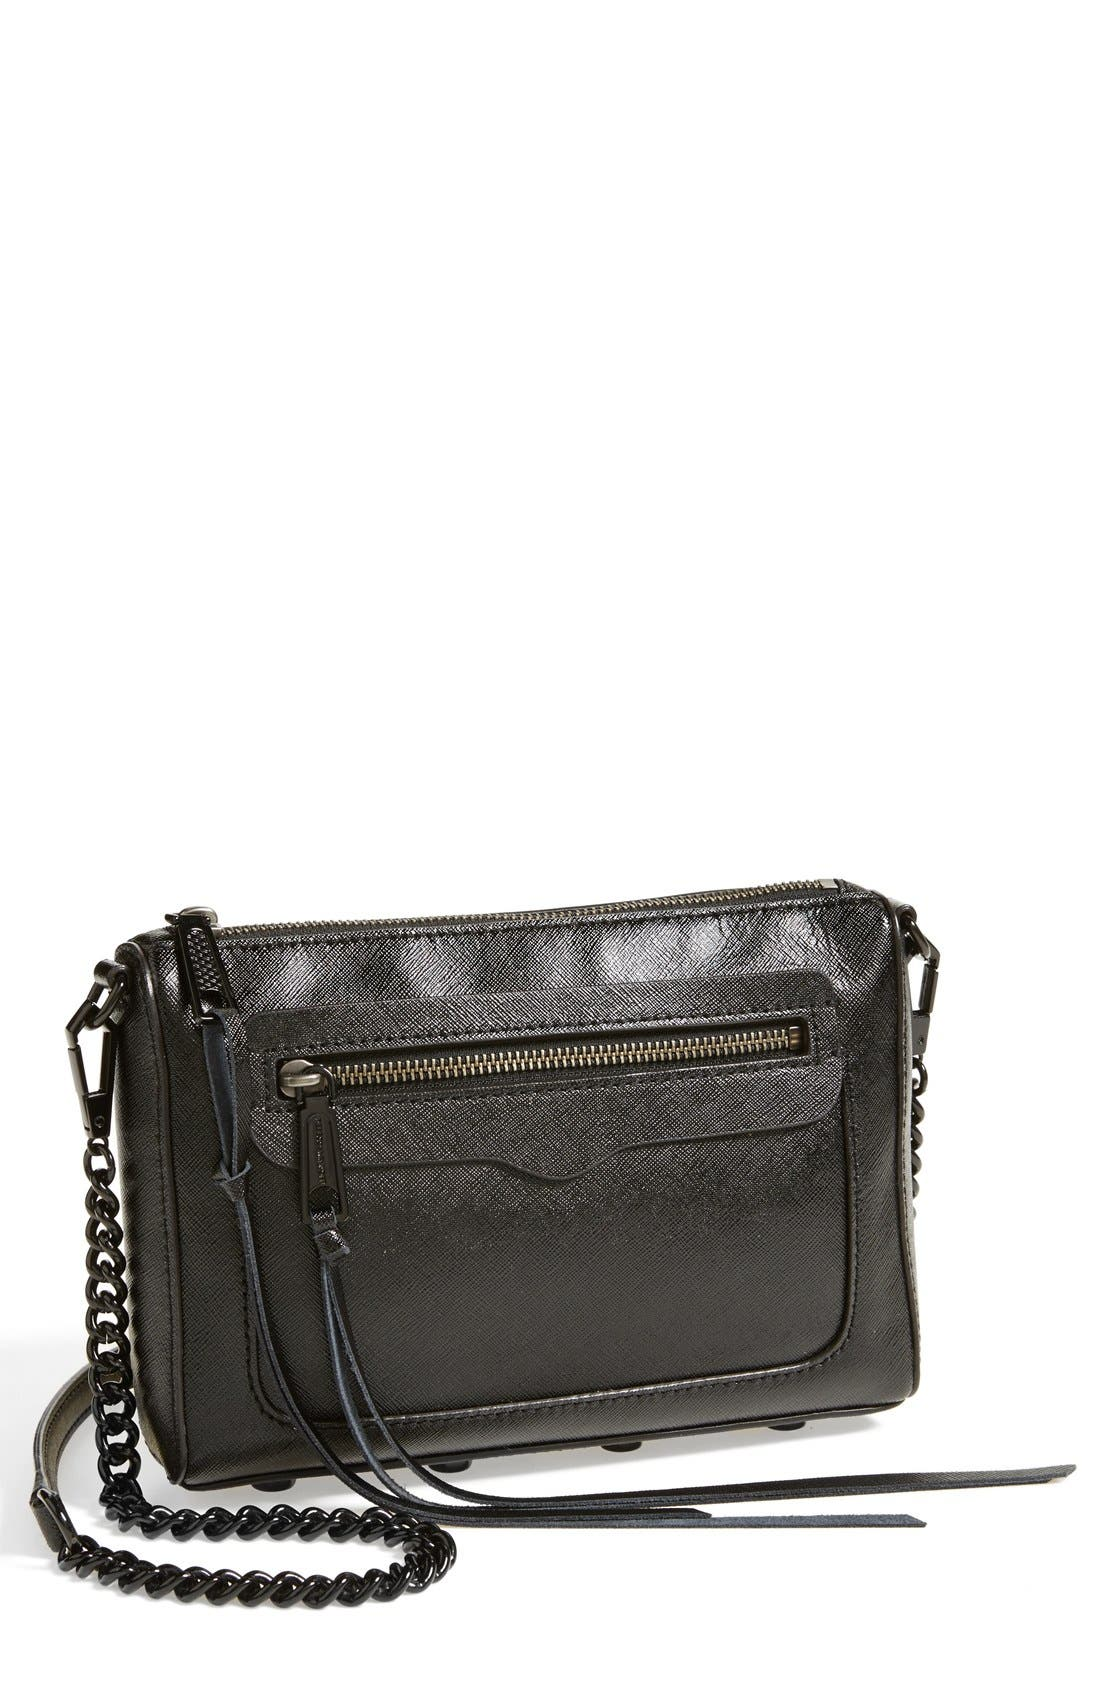 'Avery' Crossbody Bag,                             Main thumbnail 1, color,                             001